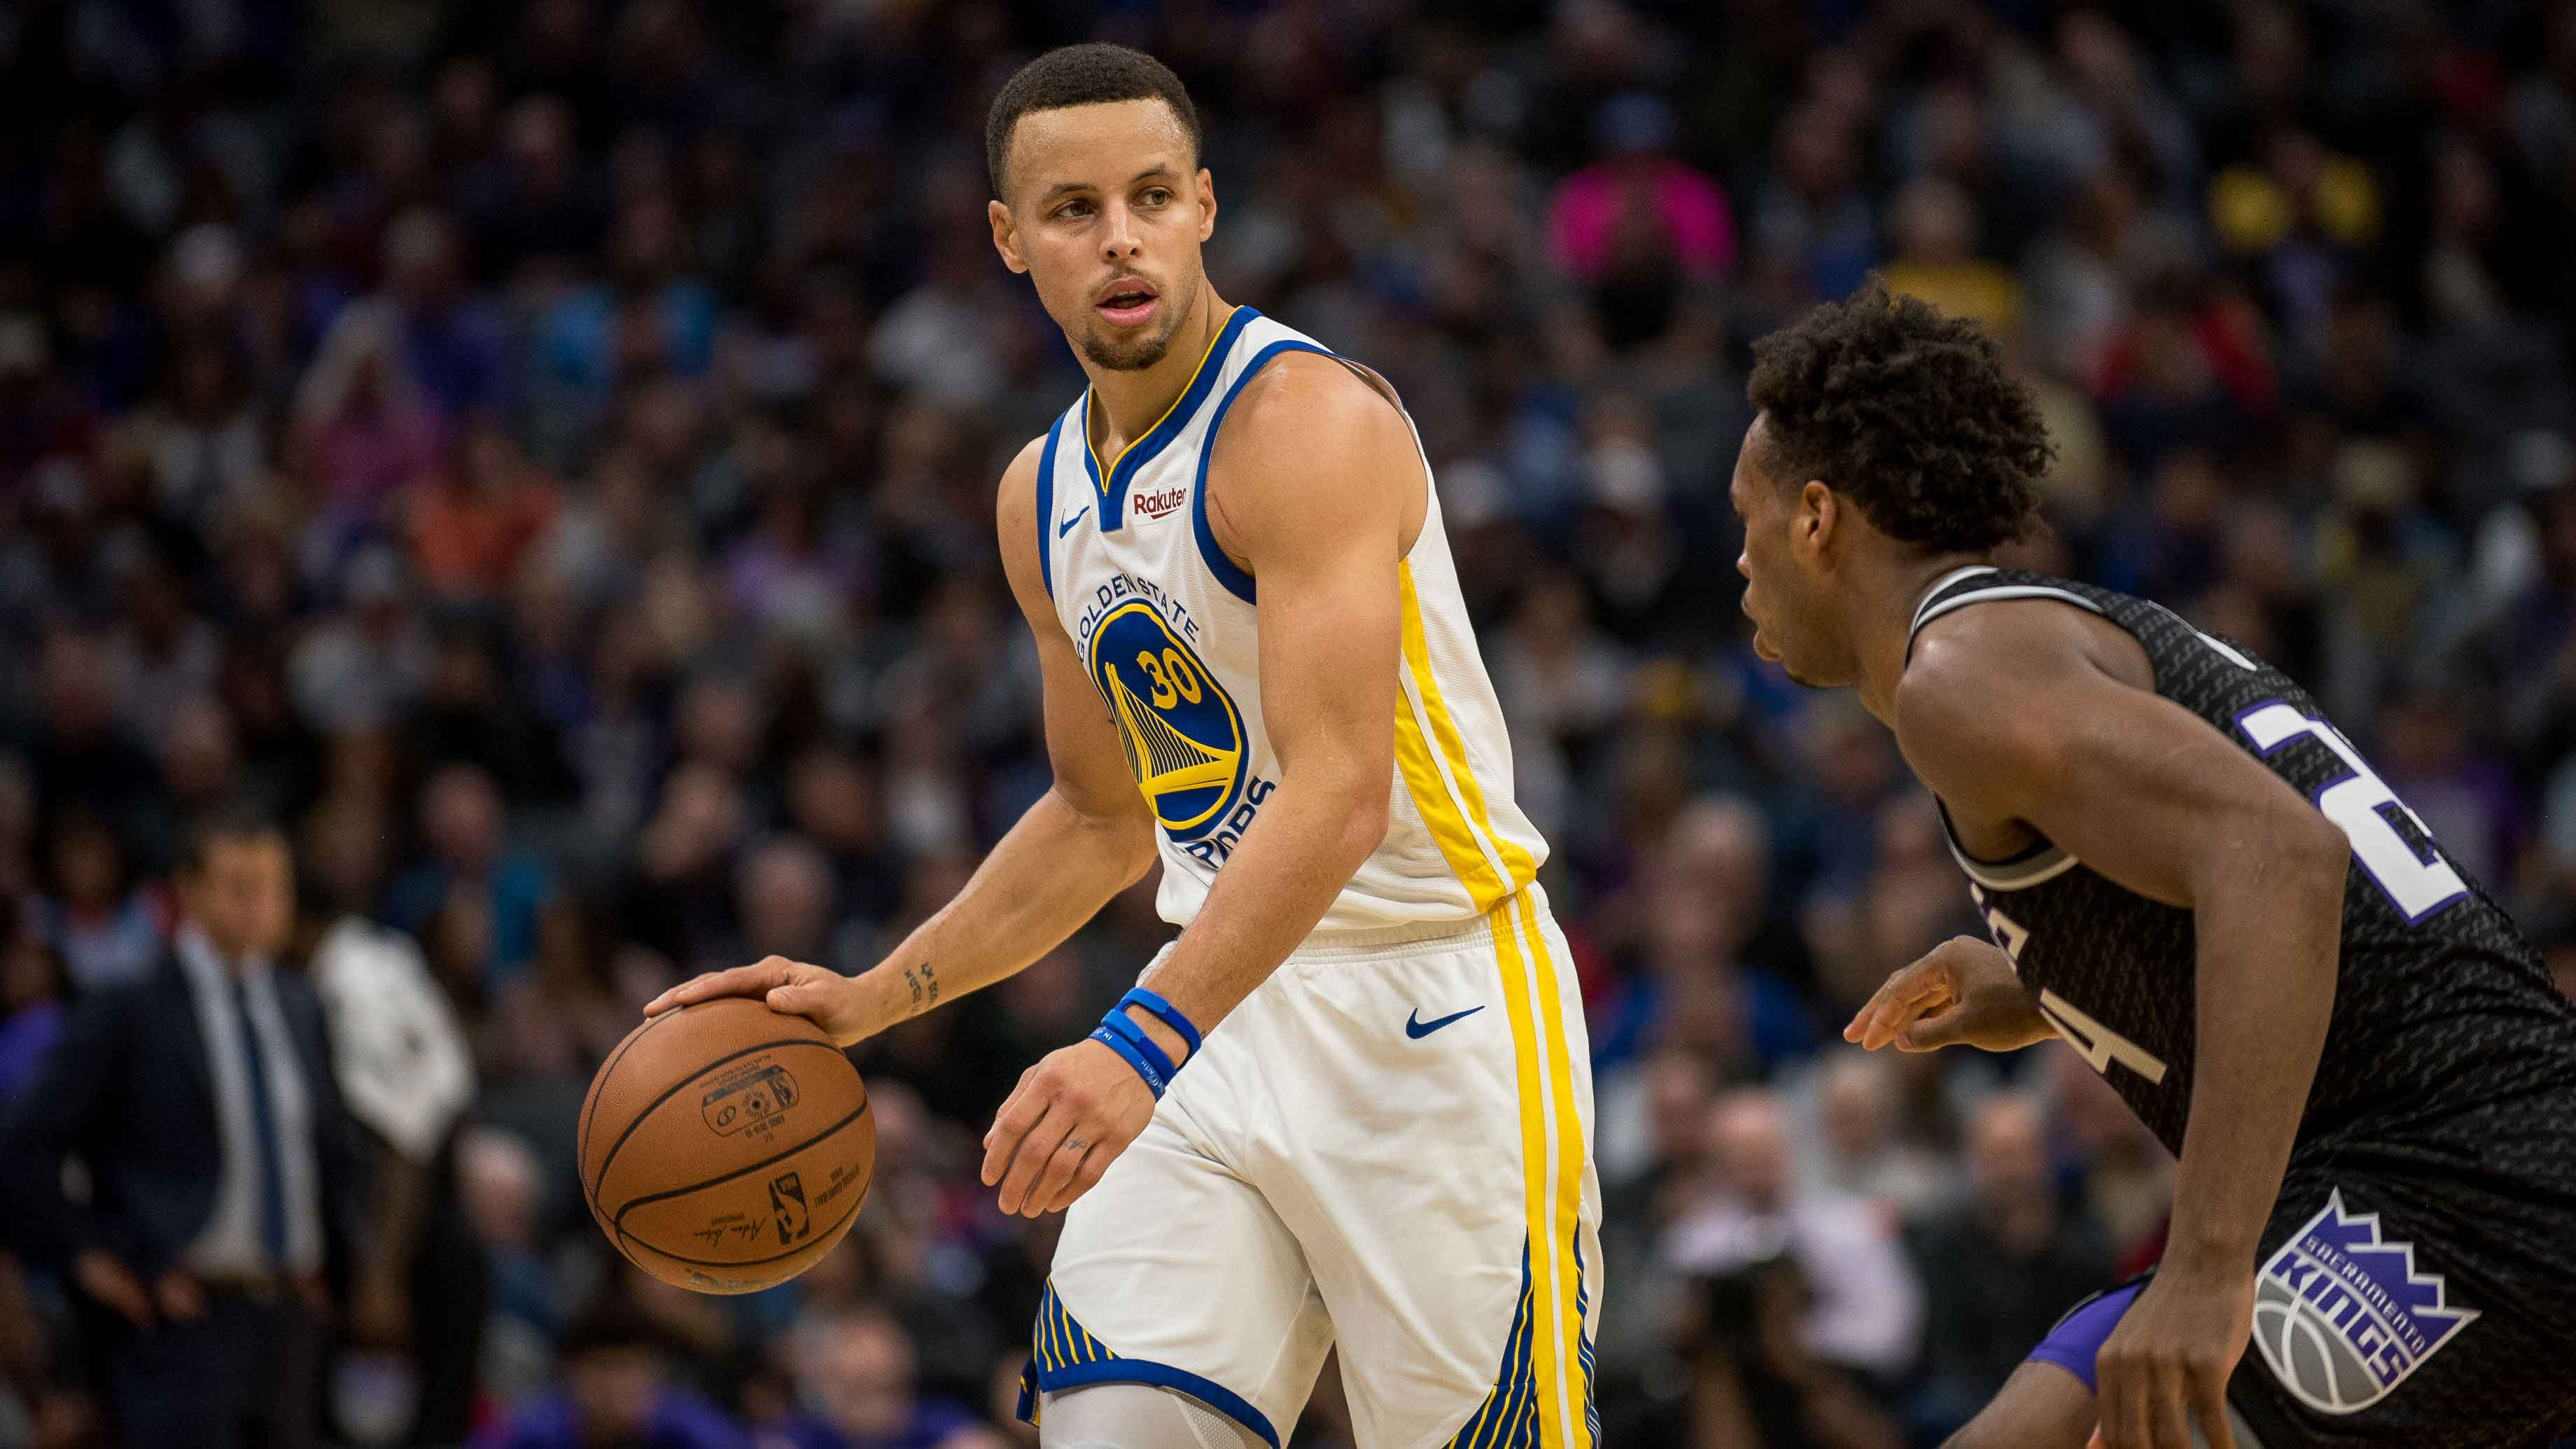 GAME RECAP: Warriors 130, Kings 125